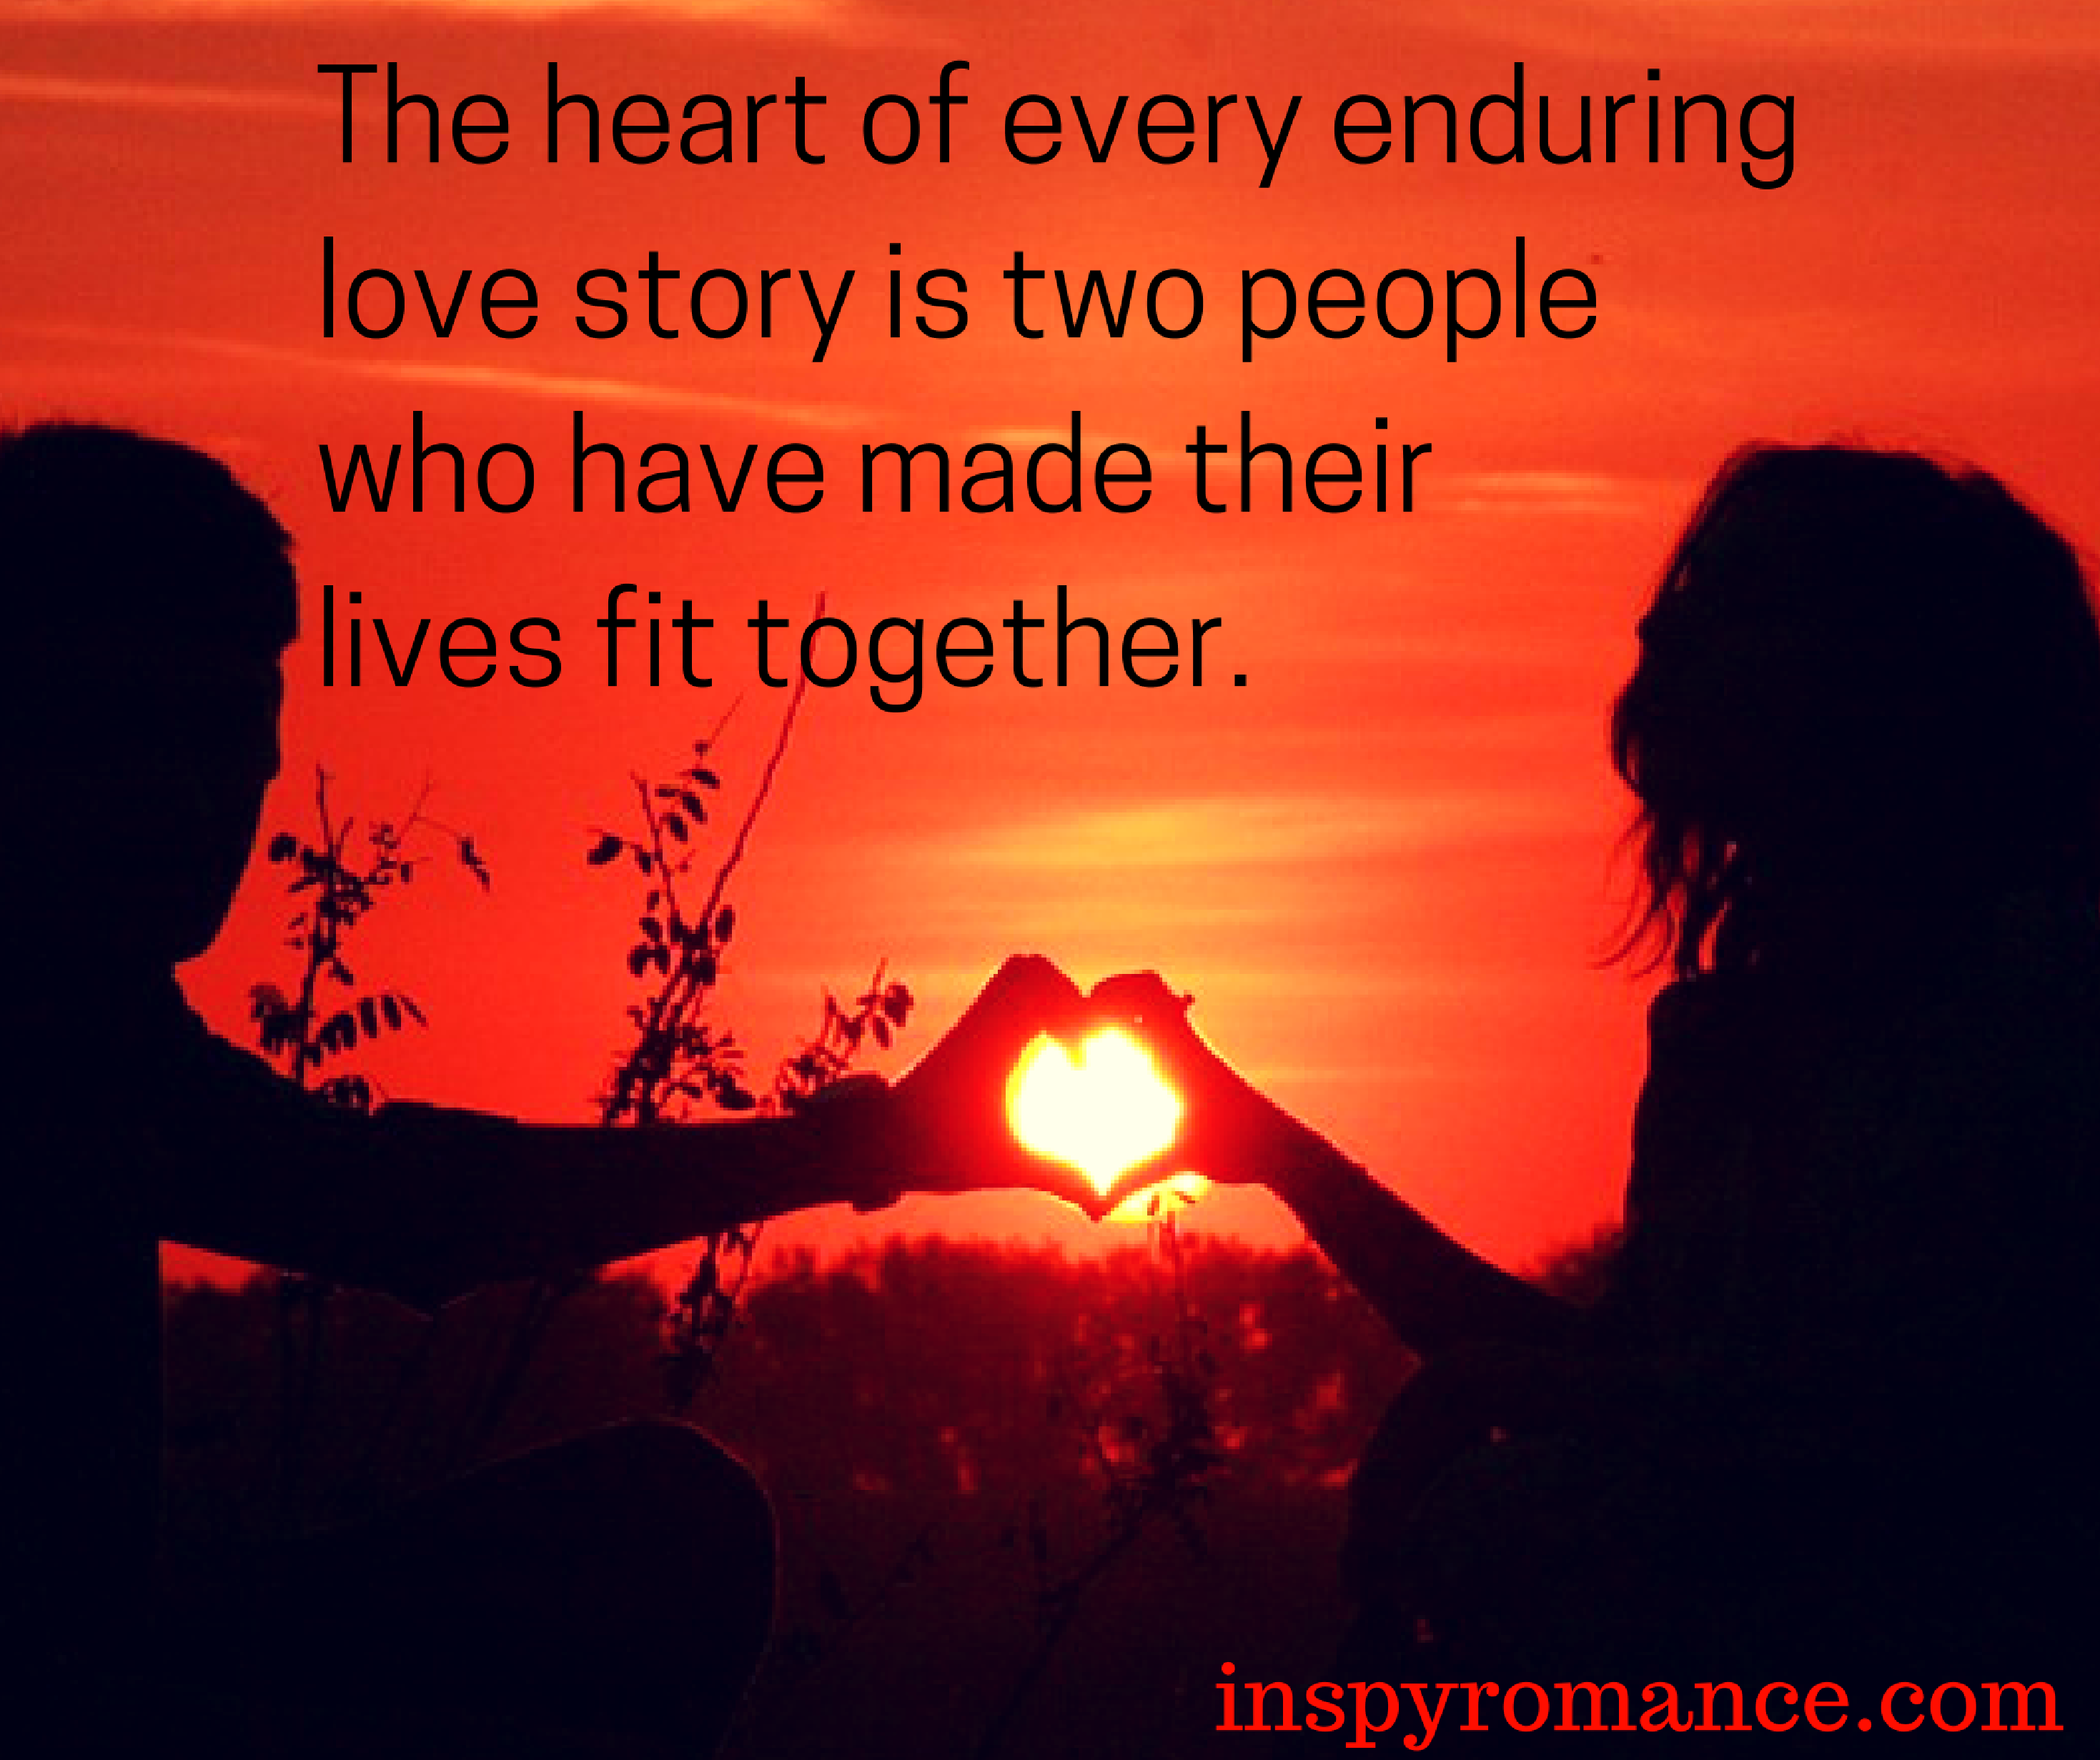 the-heart-of-every-enduring-love-story-is-two-people-who-have-made-their-lives-fit-together